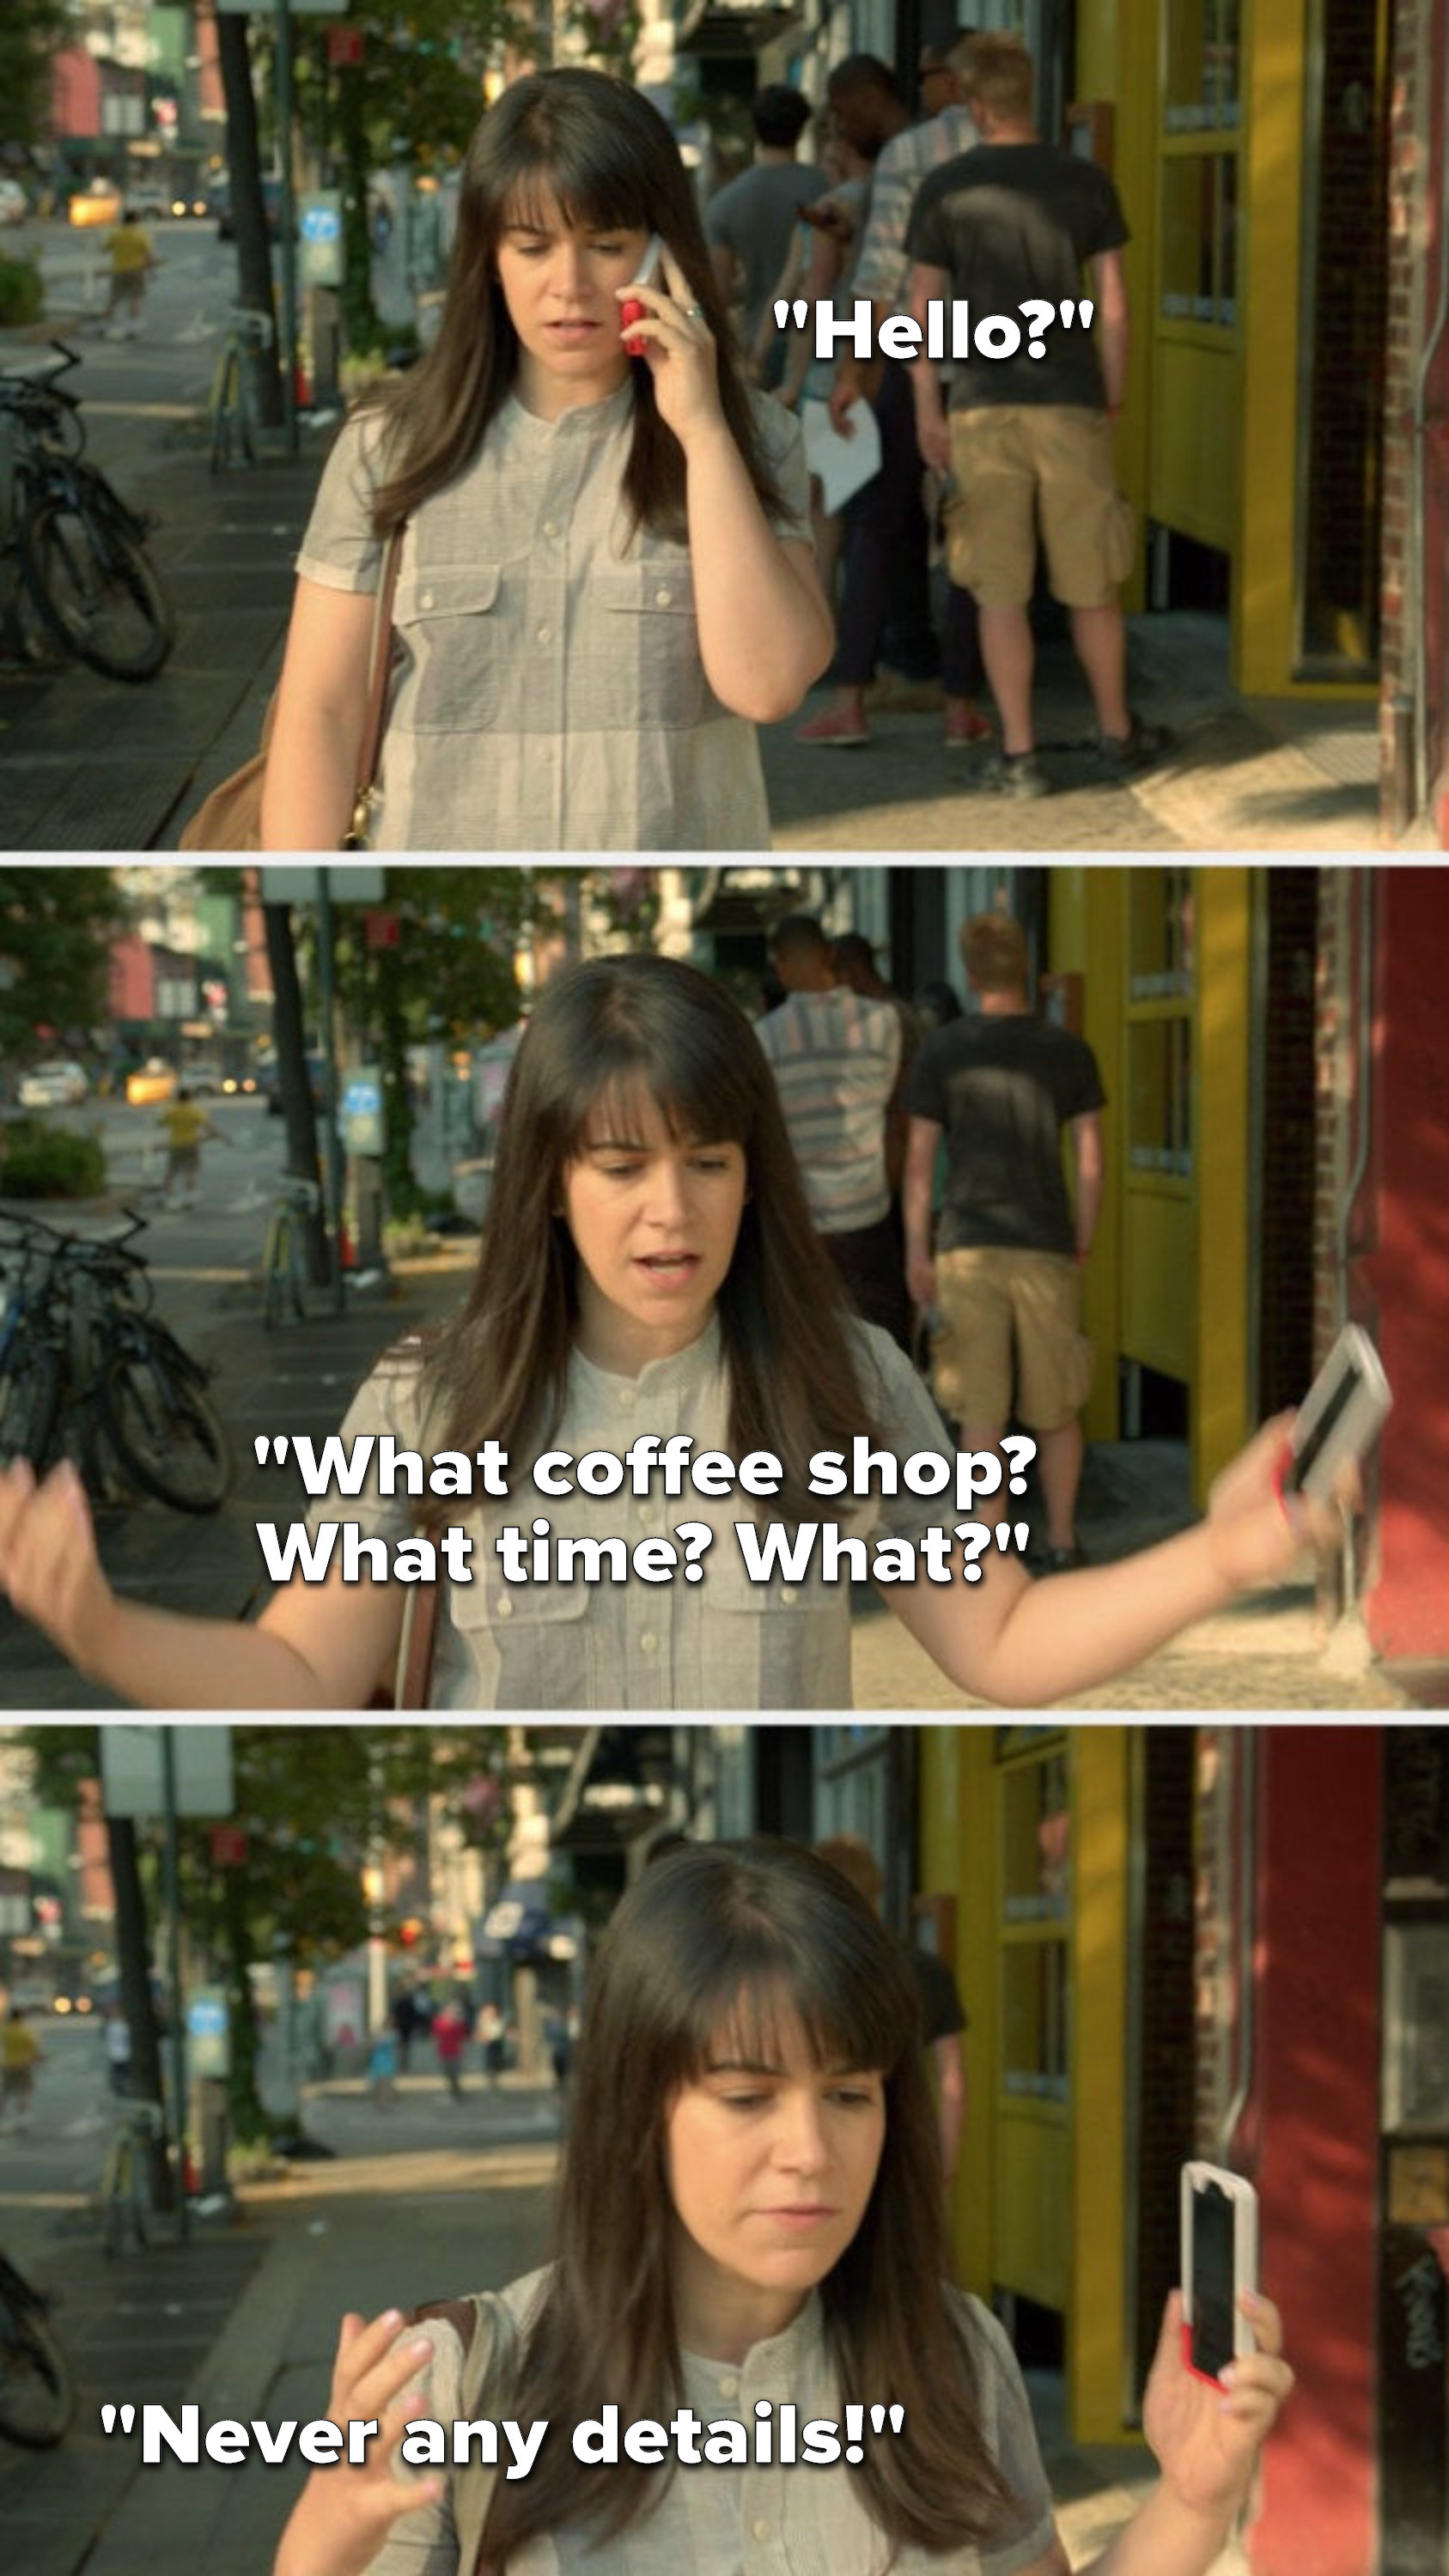 """Abbi from """"Broad City"""" is on the phone and says, """"Hello,"""" then she lowers her phone from her ear and says, """"What coffee shop? What time? What? Never any details!"""""""